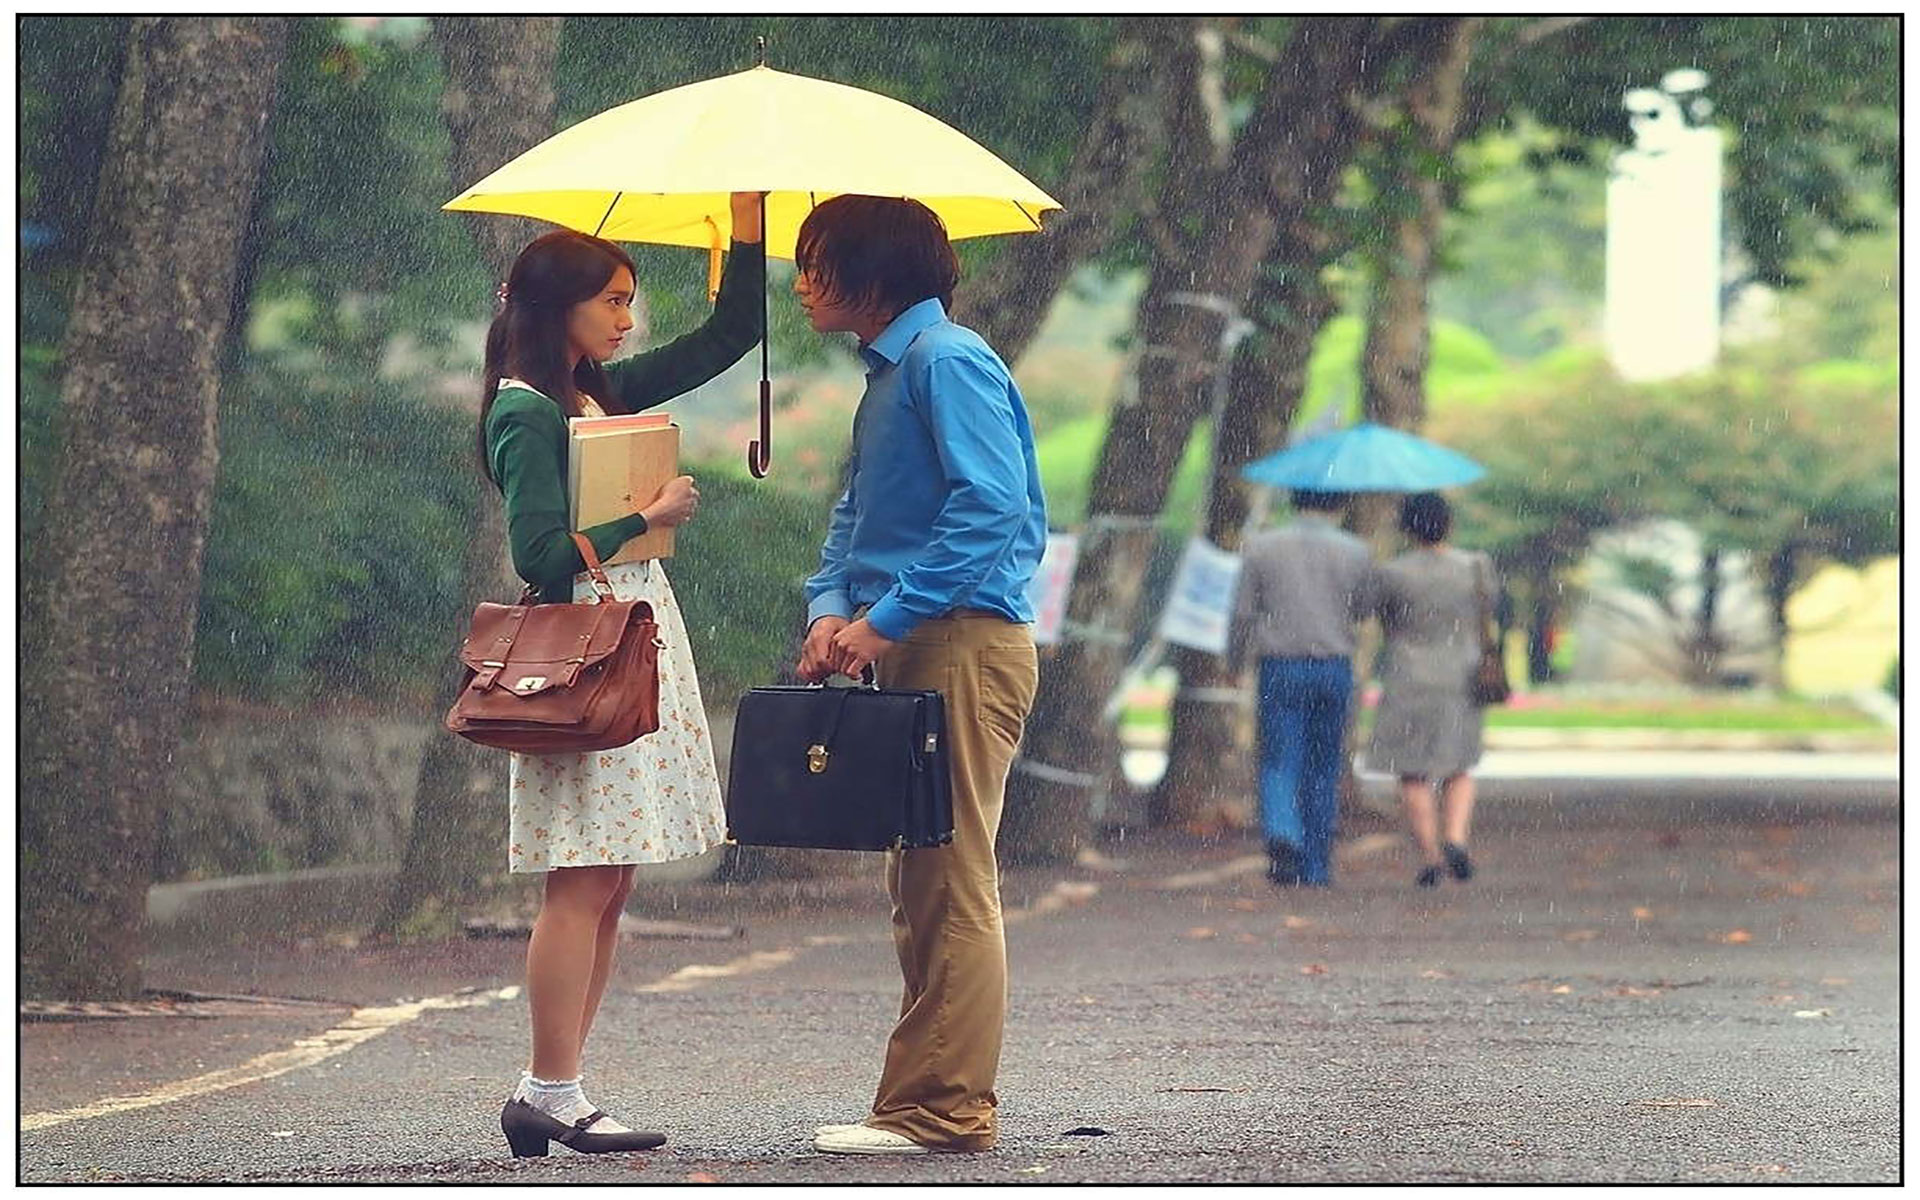 First impression of love in a rainy day